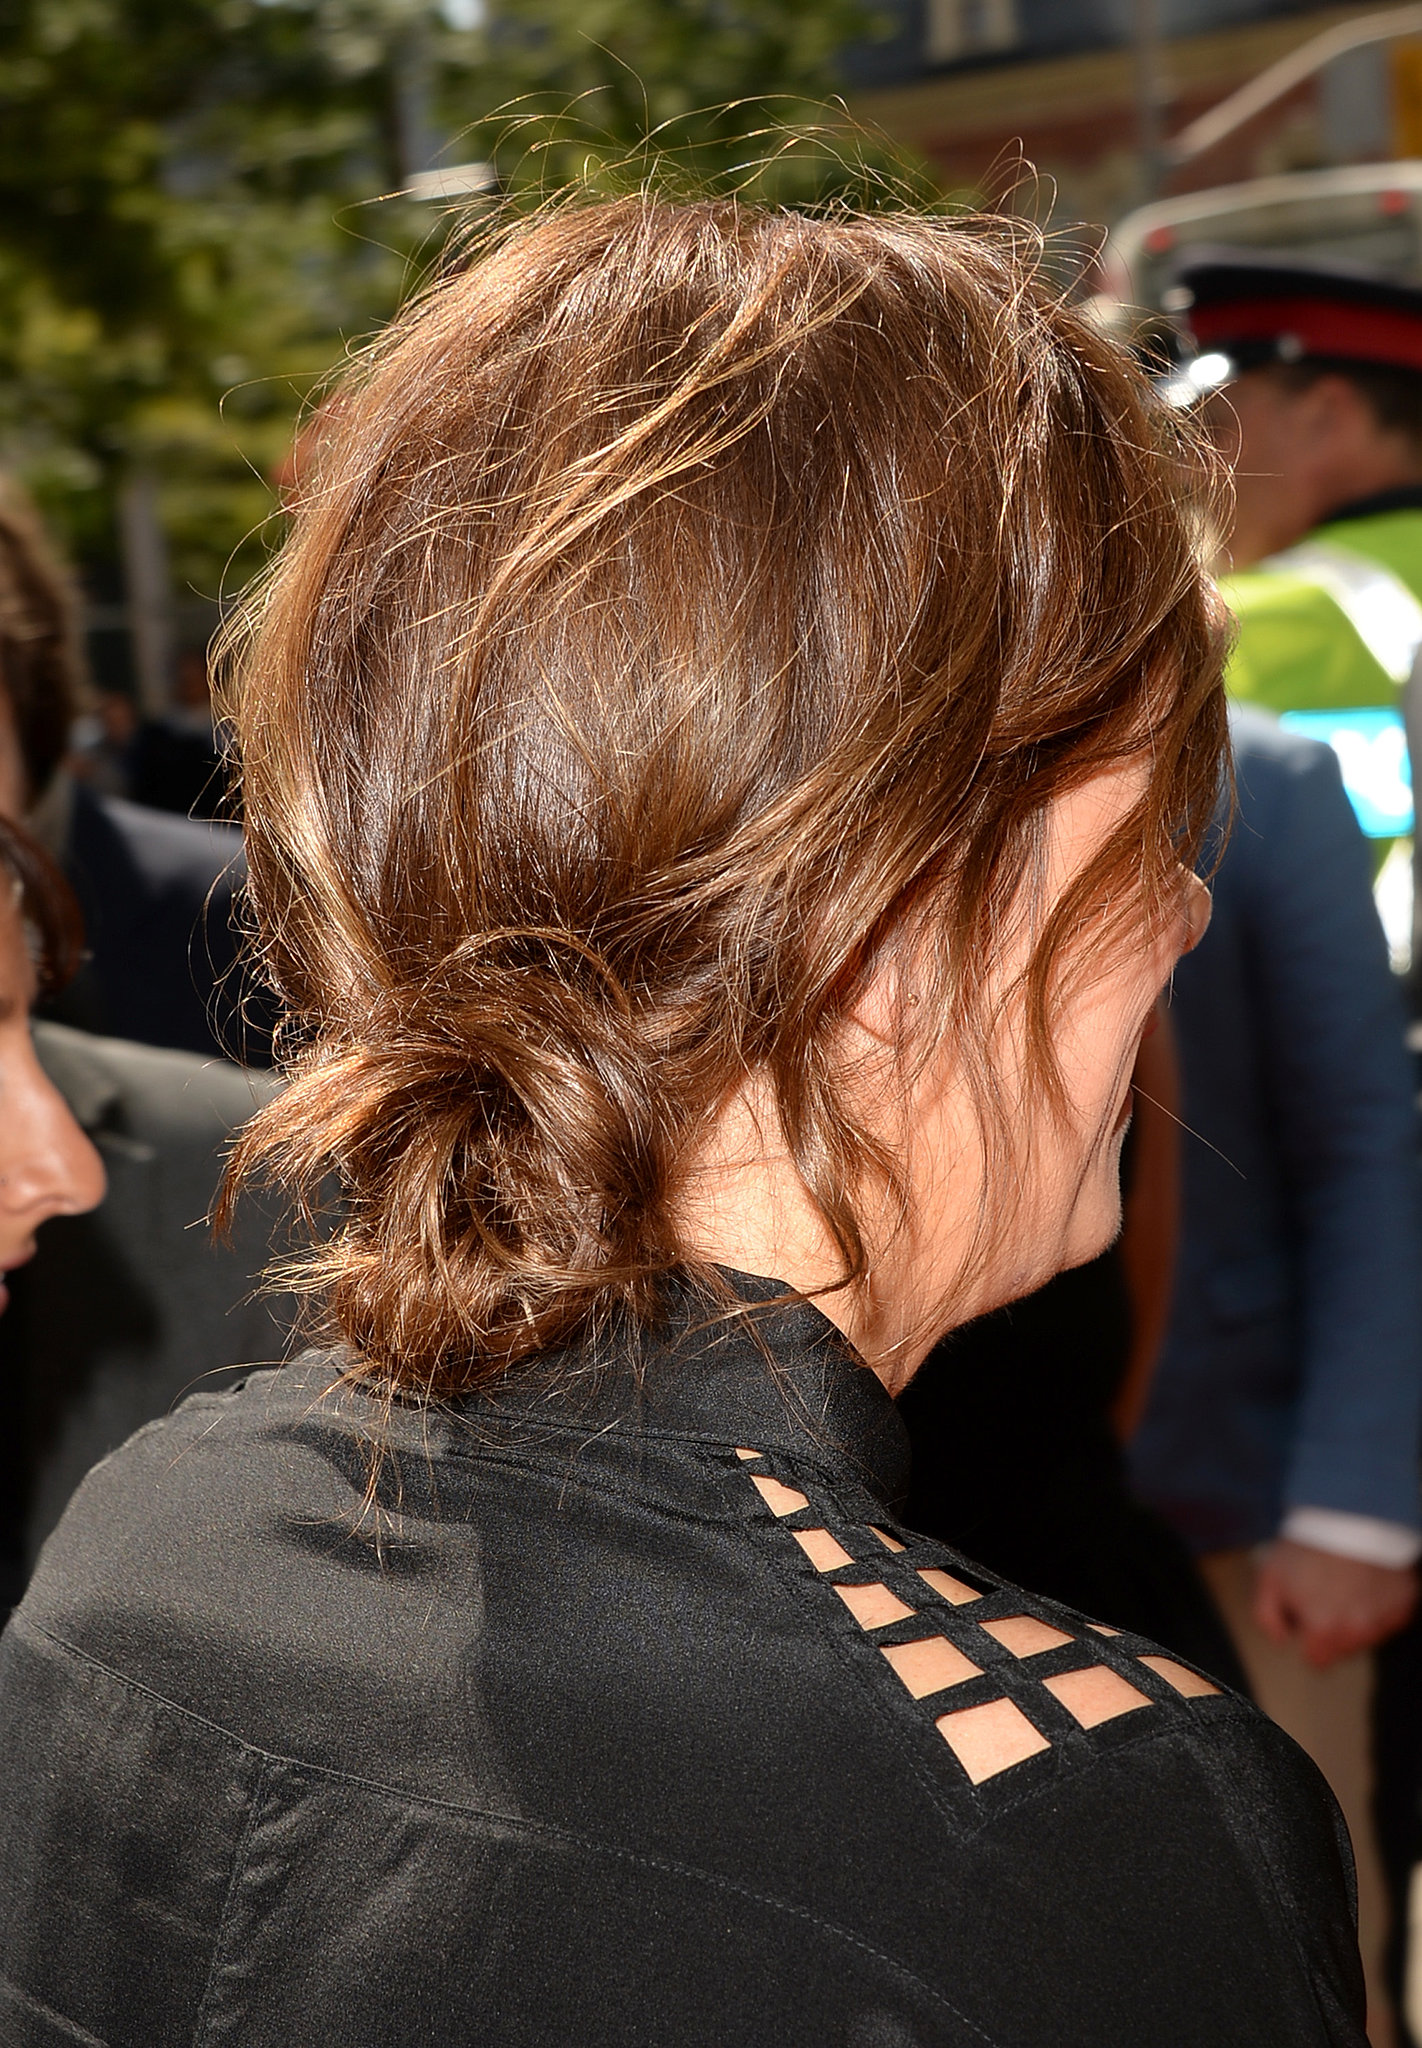 Here's Kristen Wiig donning a tousled, low-slung bun while walking the red carpet at t